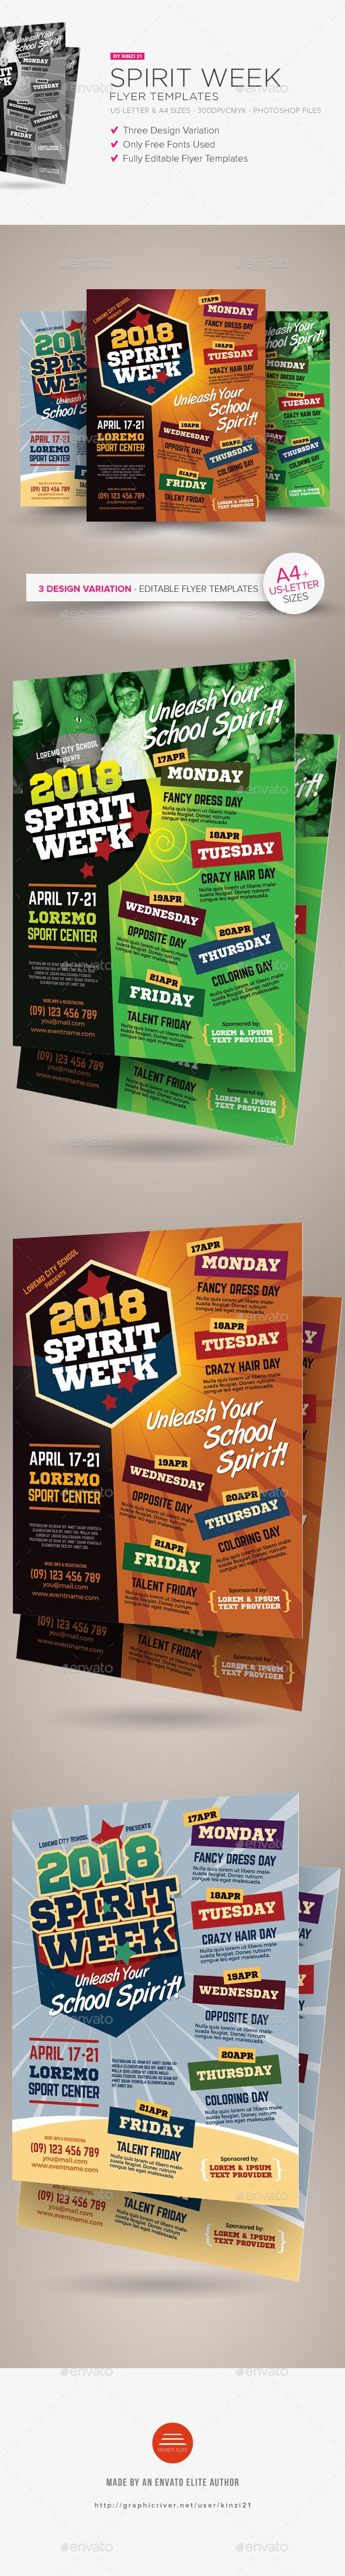 spirit week flyer templates miscellaneous events download here